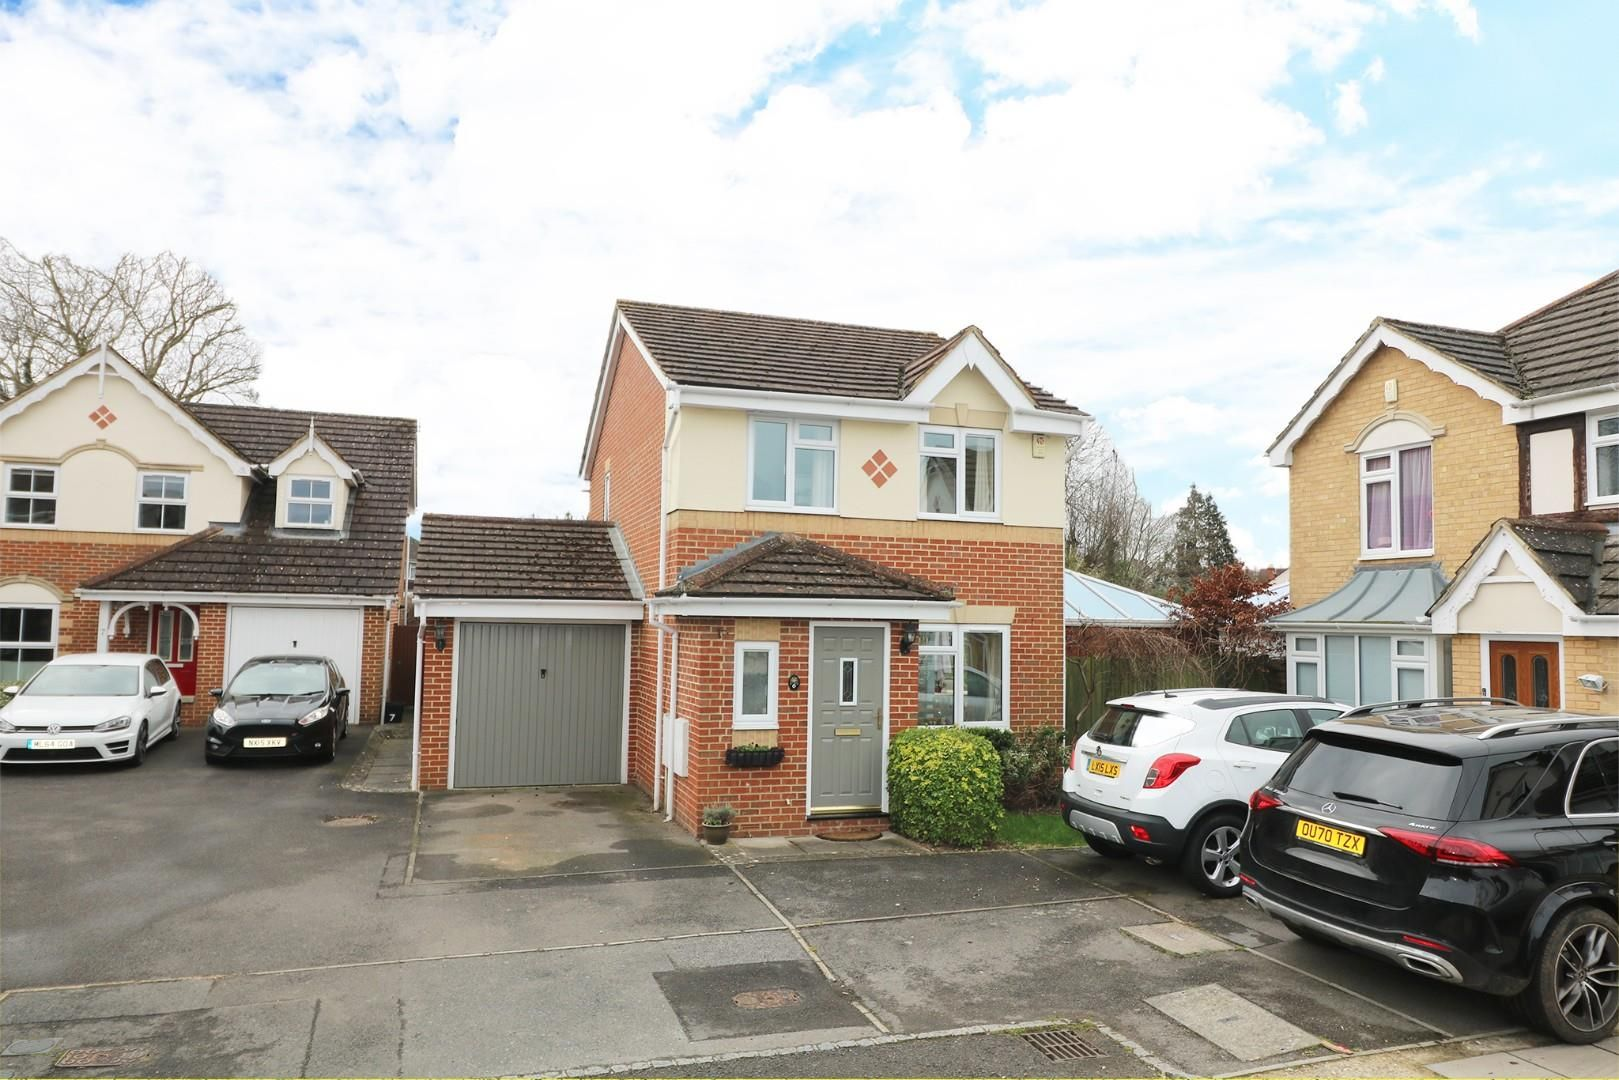 3 bed house for sale in Woodley, RG5